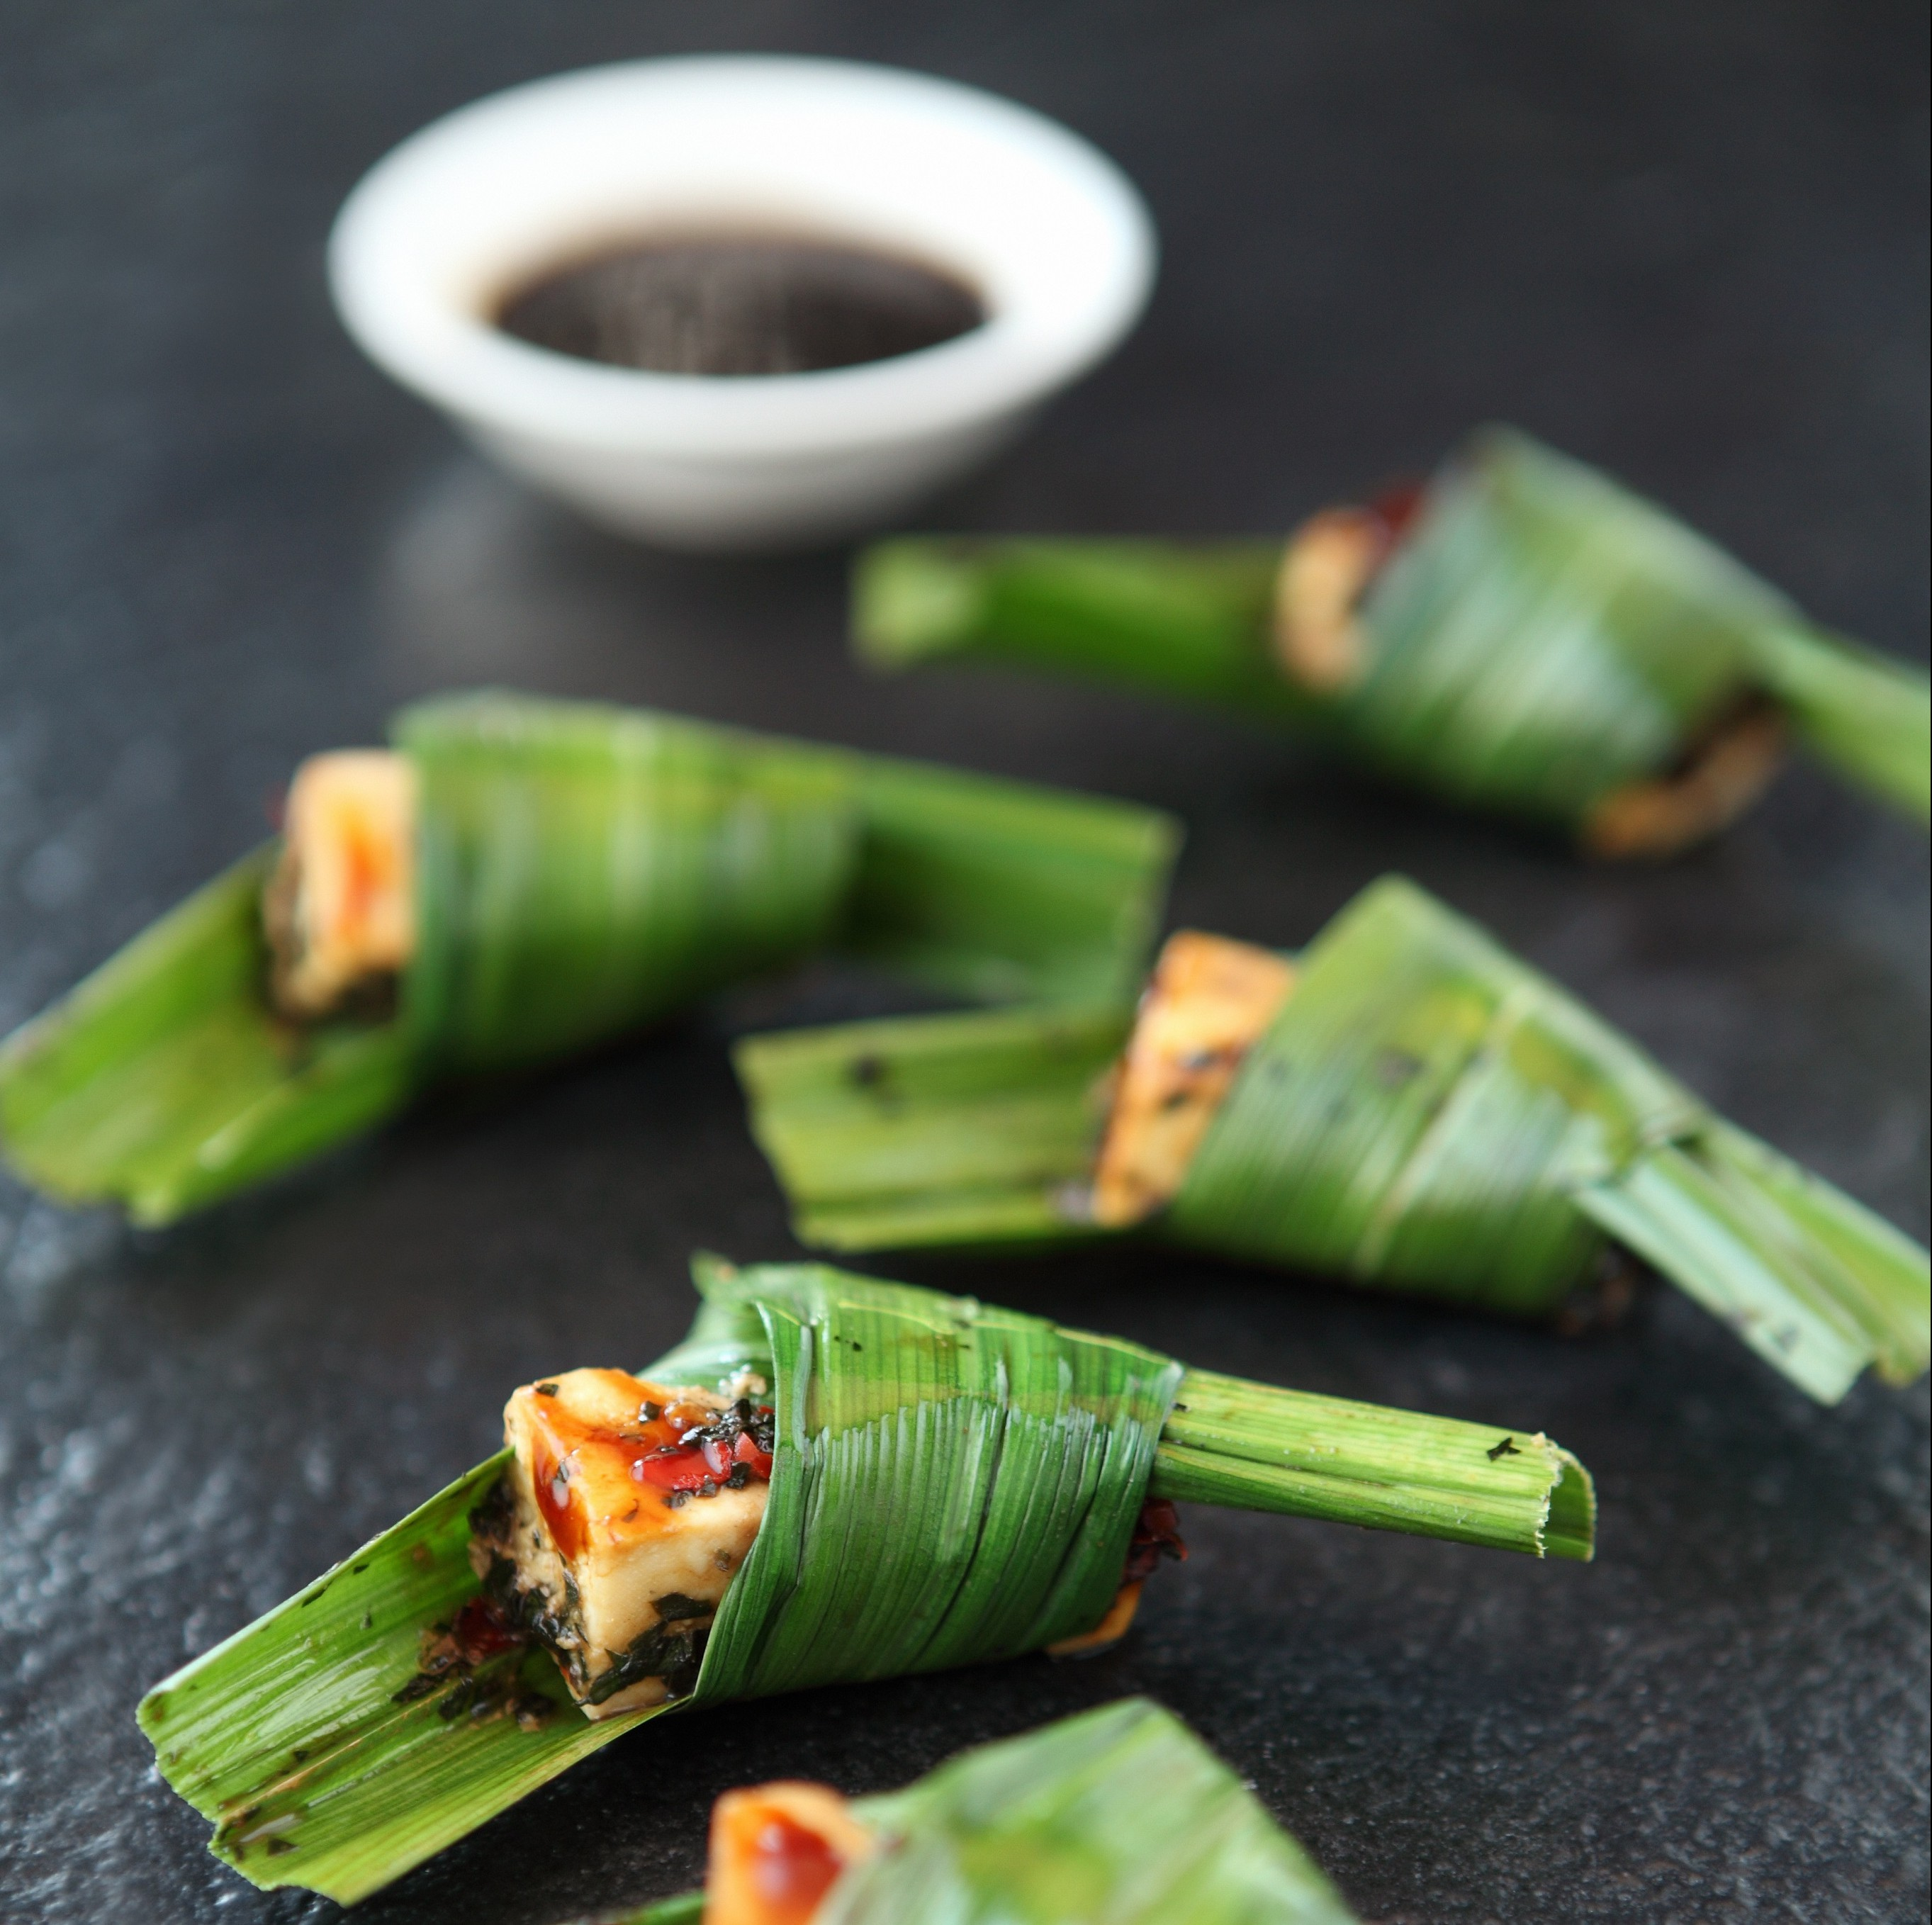 Pandan Leaf Wrapped Spiced Cottage Cheese - served with coriander chilli soy